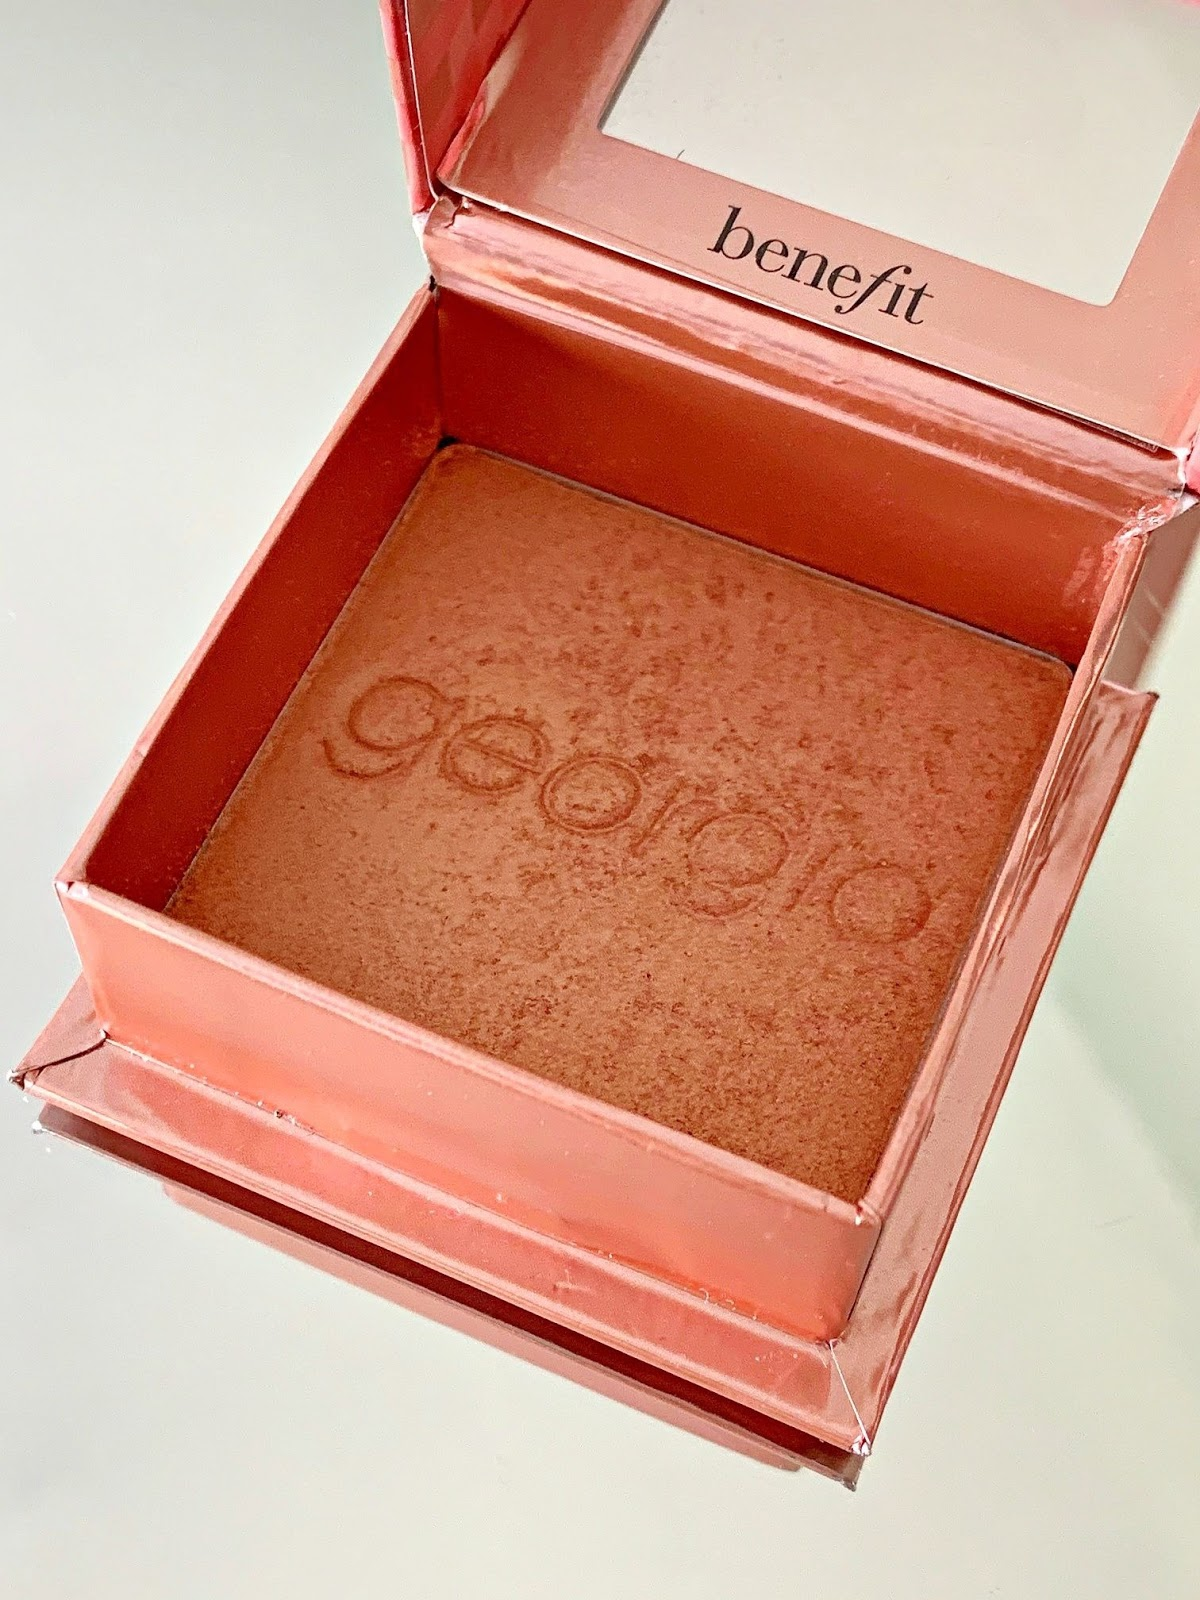 Benefit Georgia Blush - a Look Fantastic Exclusive with a 20% discount!